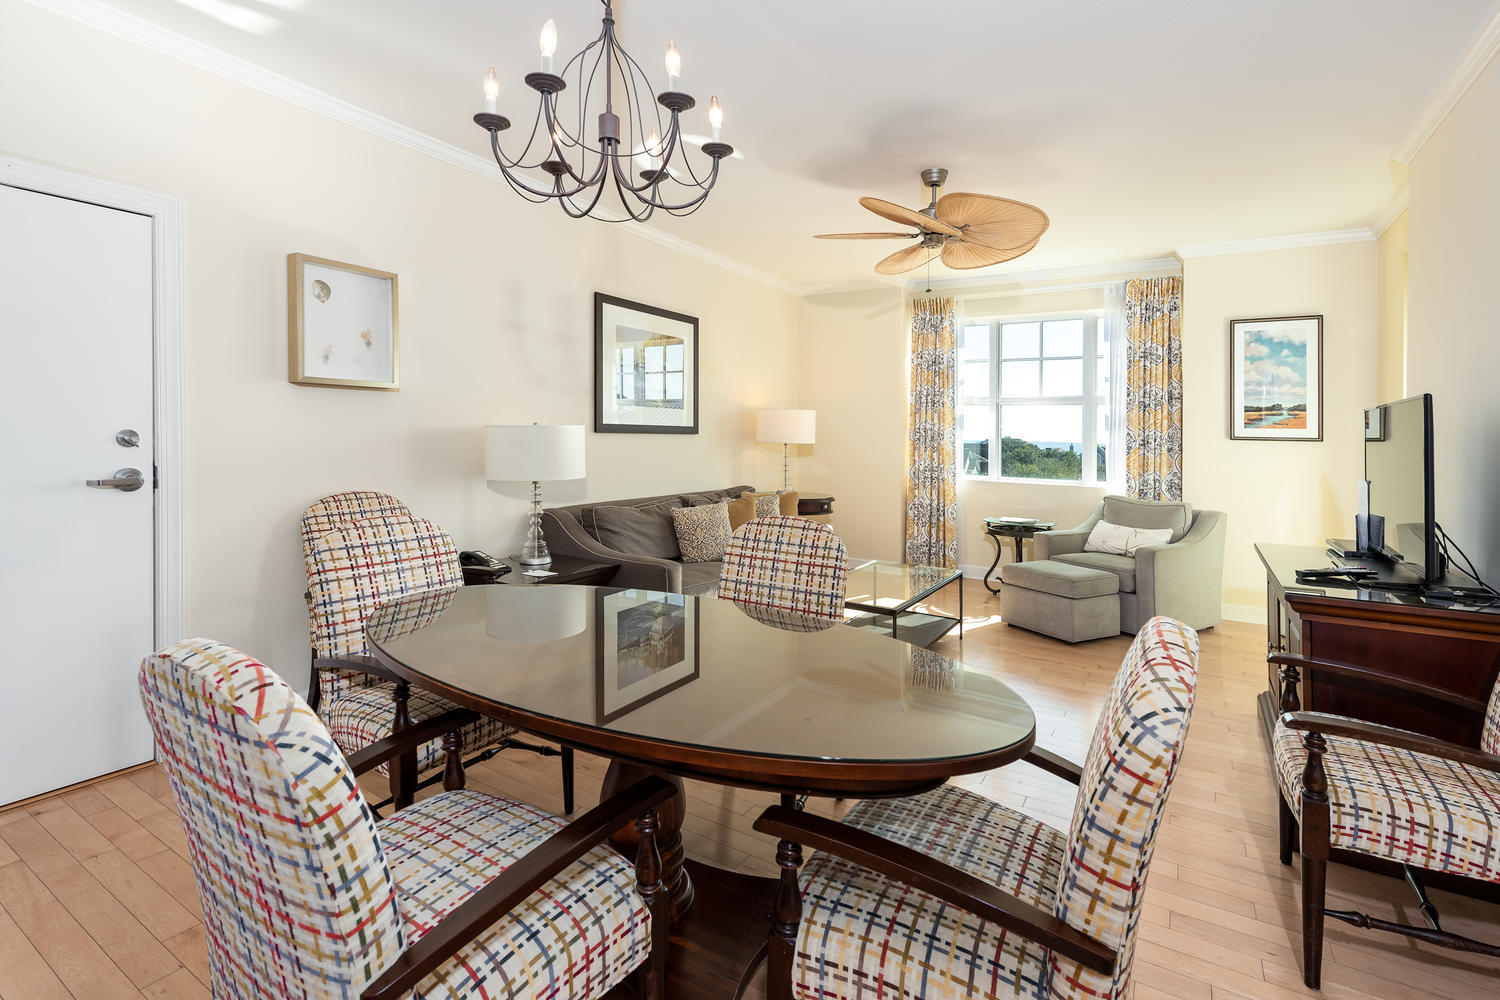 Wild Dunes Homes For Sale - 405/407 B Village At Wild Dunes, Isle of Palms, SC - 0